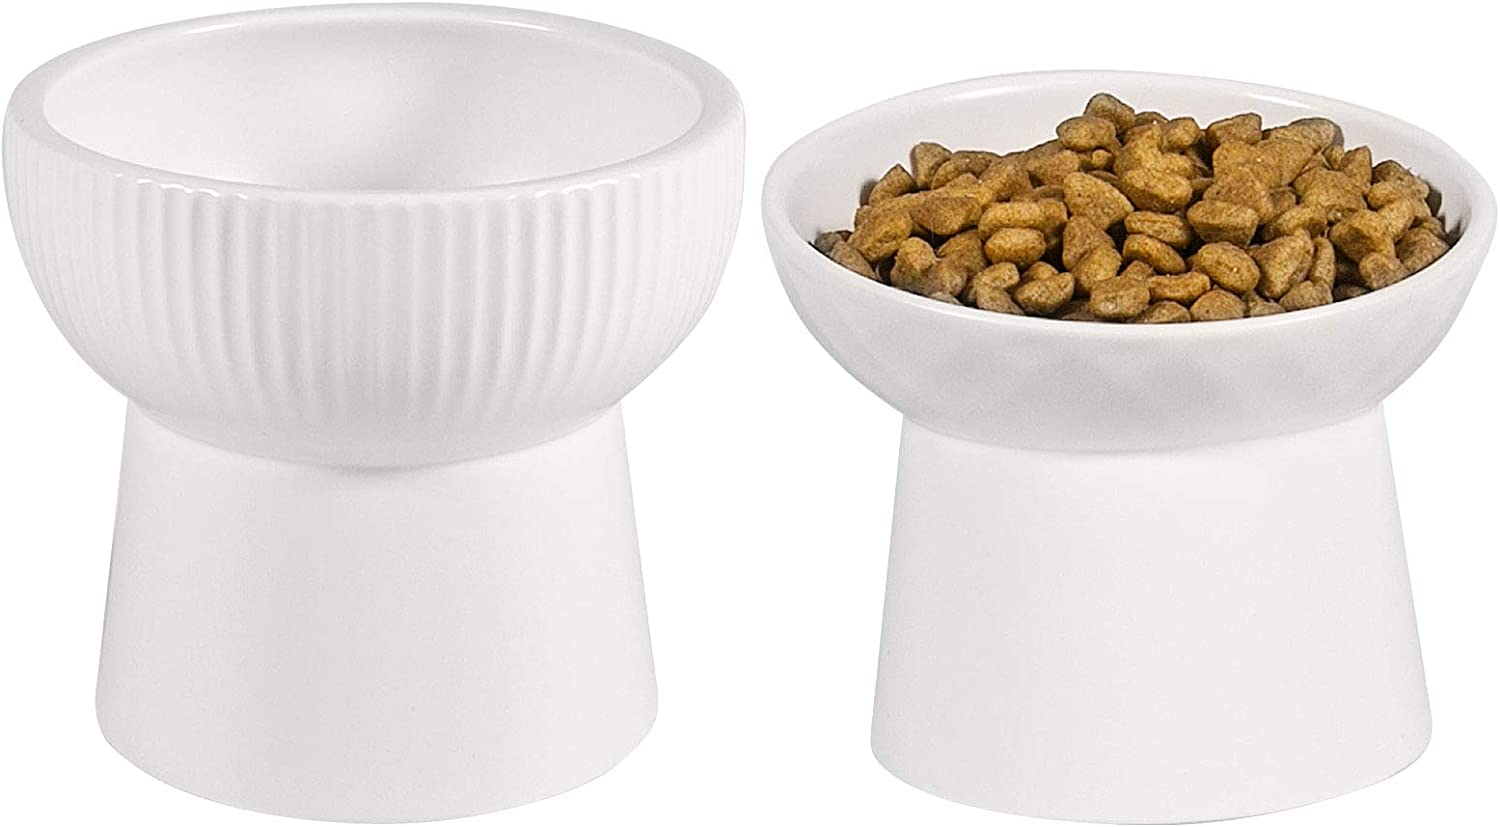 Qucey Raised Cat Food and Water Bowl Set, Elevated Ceramic Cat Feeder Bowls Pet Dish with Stand, Dishwasher and Microwave Safe